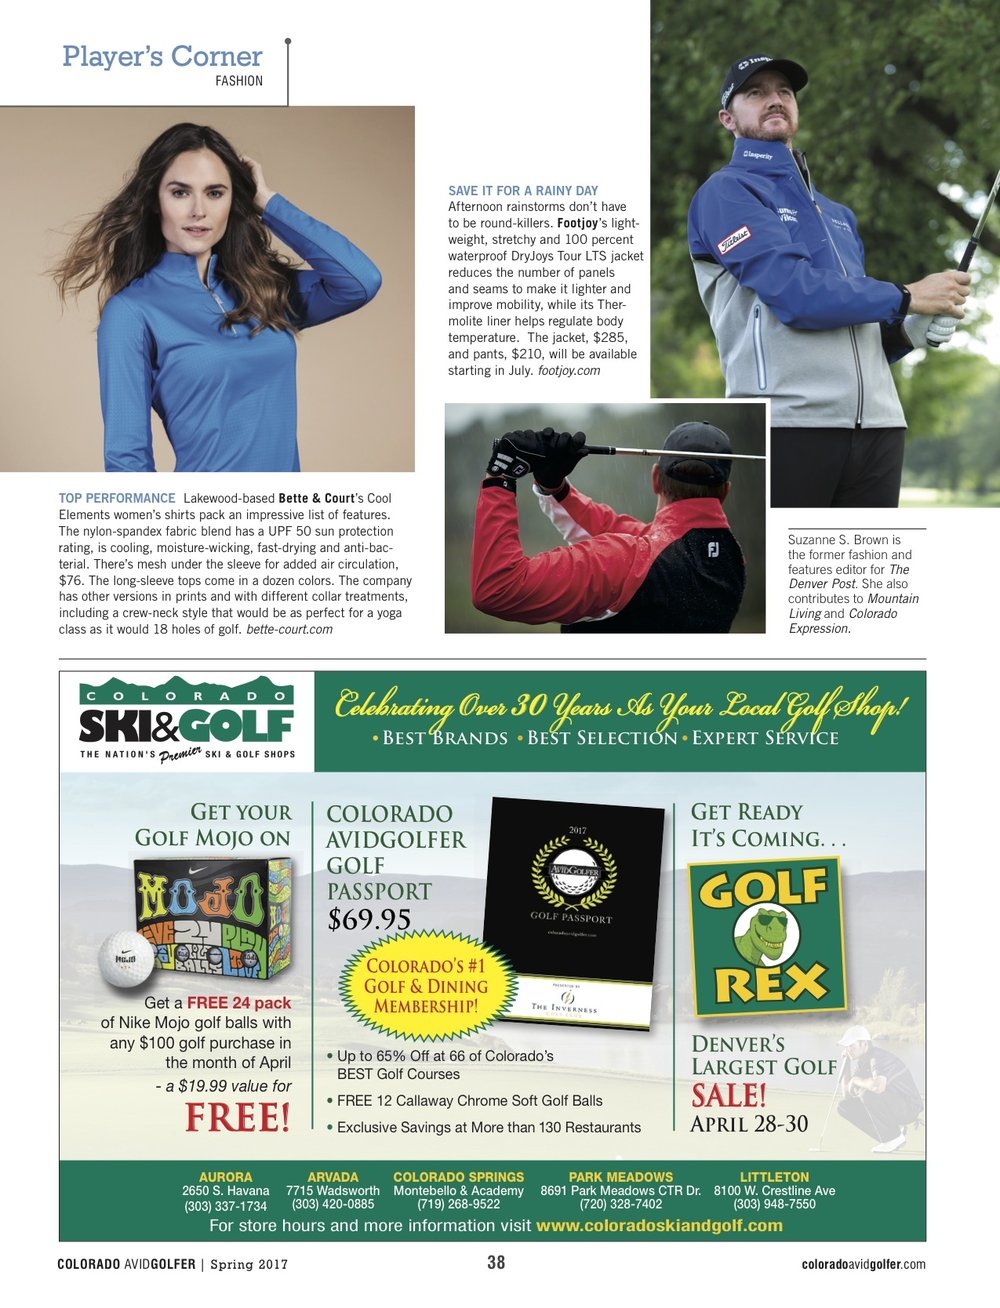 Second page of the April layout for Colorado Avid Golfer